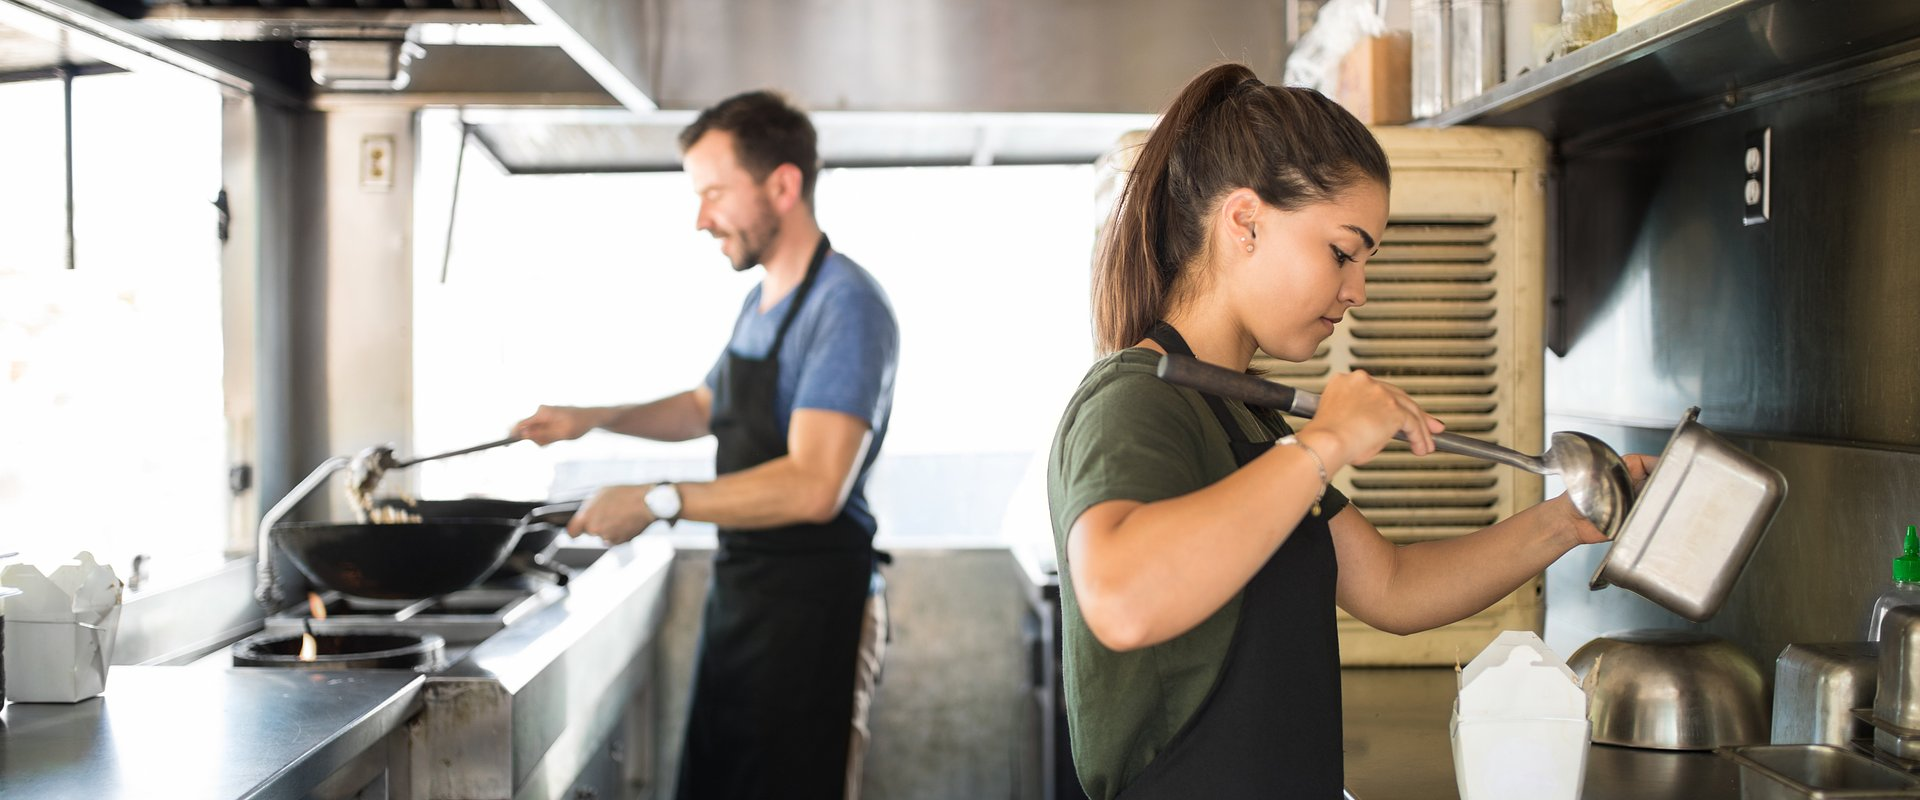 10 Must-Know Tips for First Time Food Truck Owners